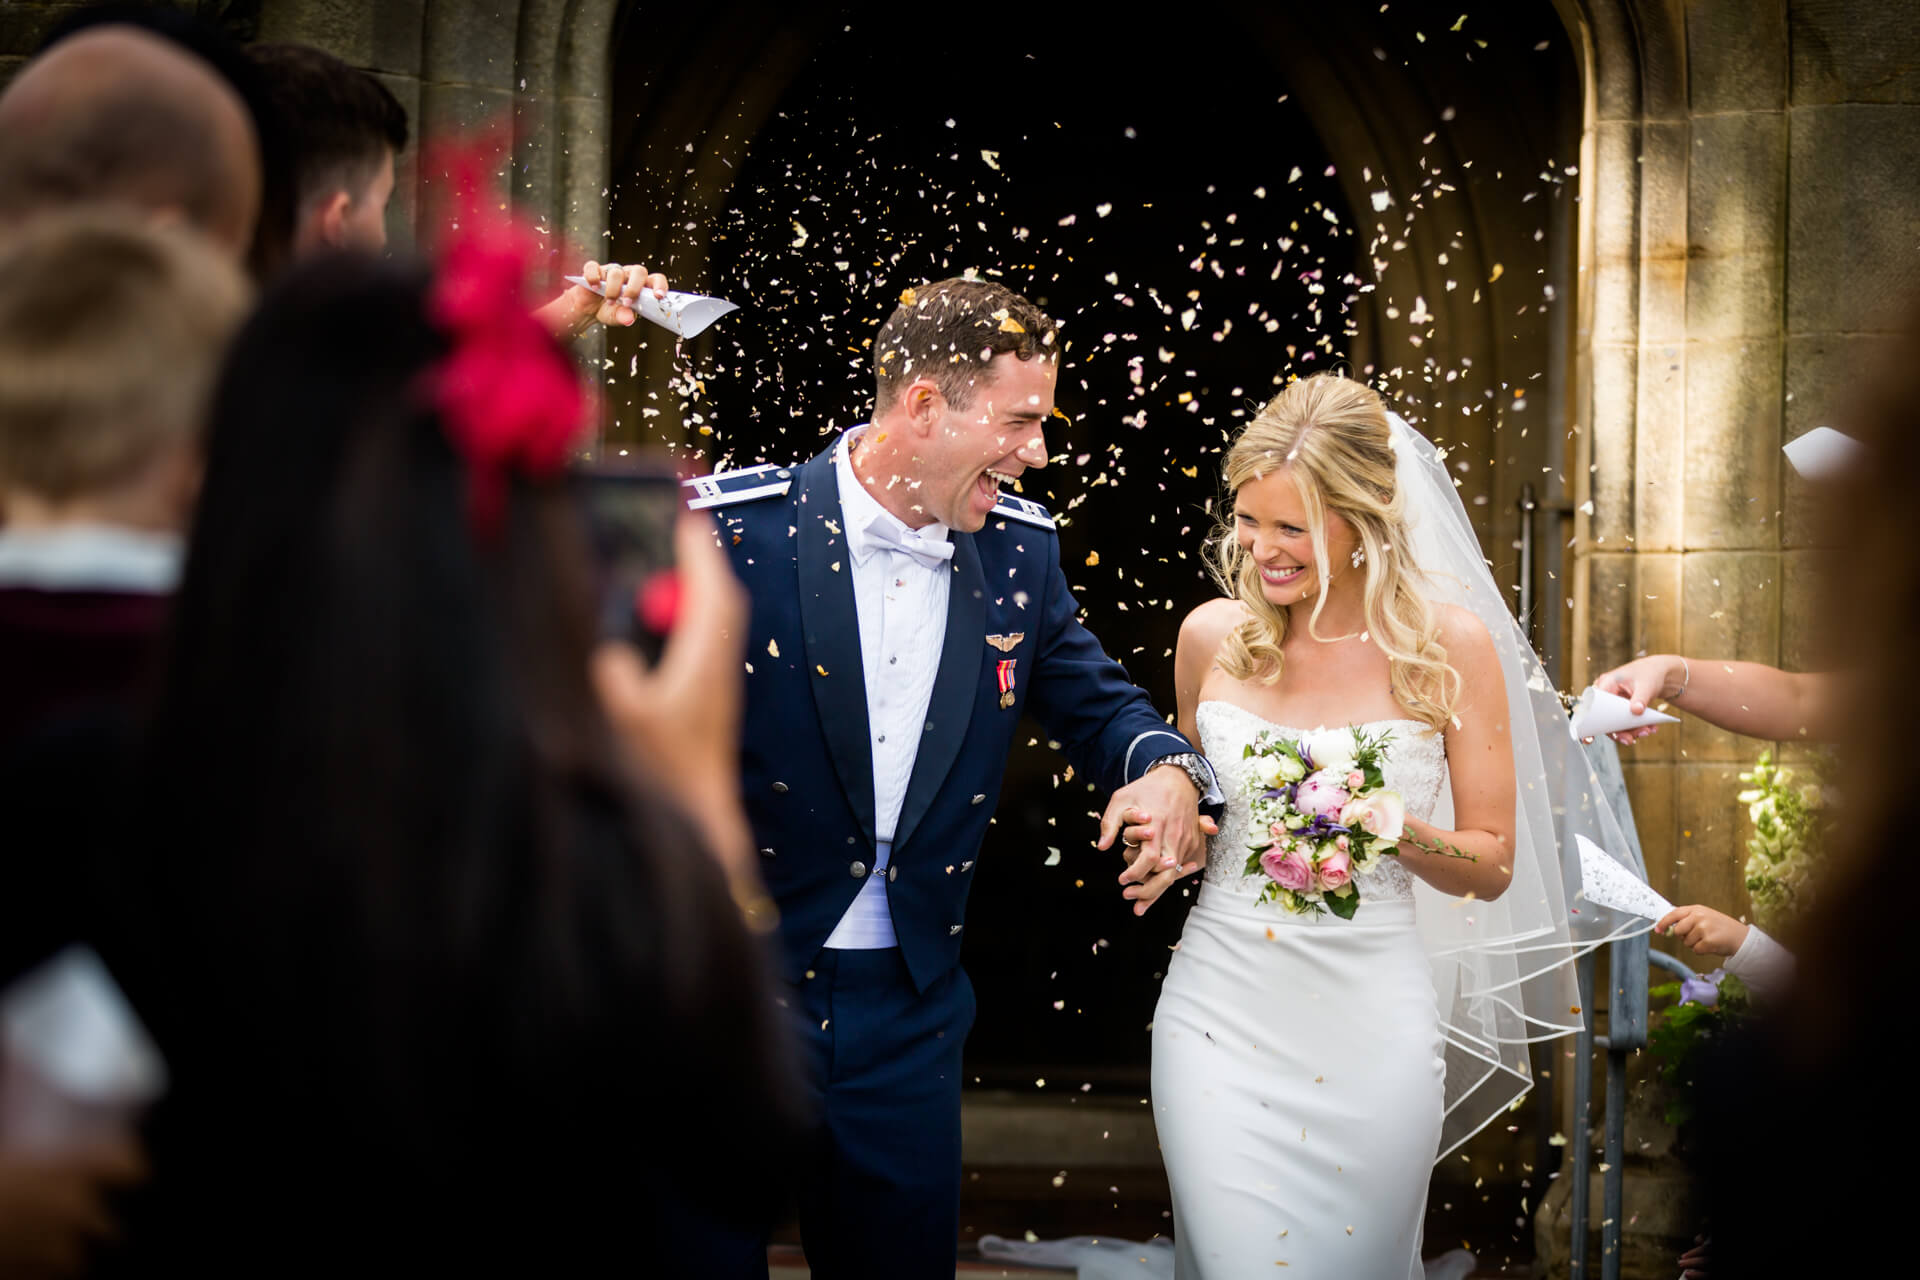 wedding couple laugh at each other whist run-in under the confetti